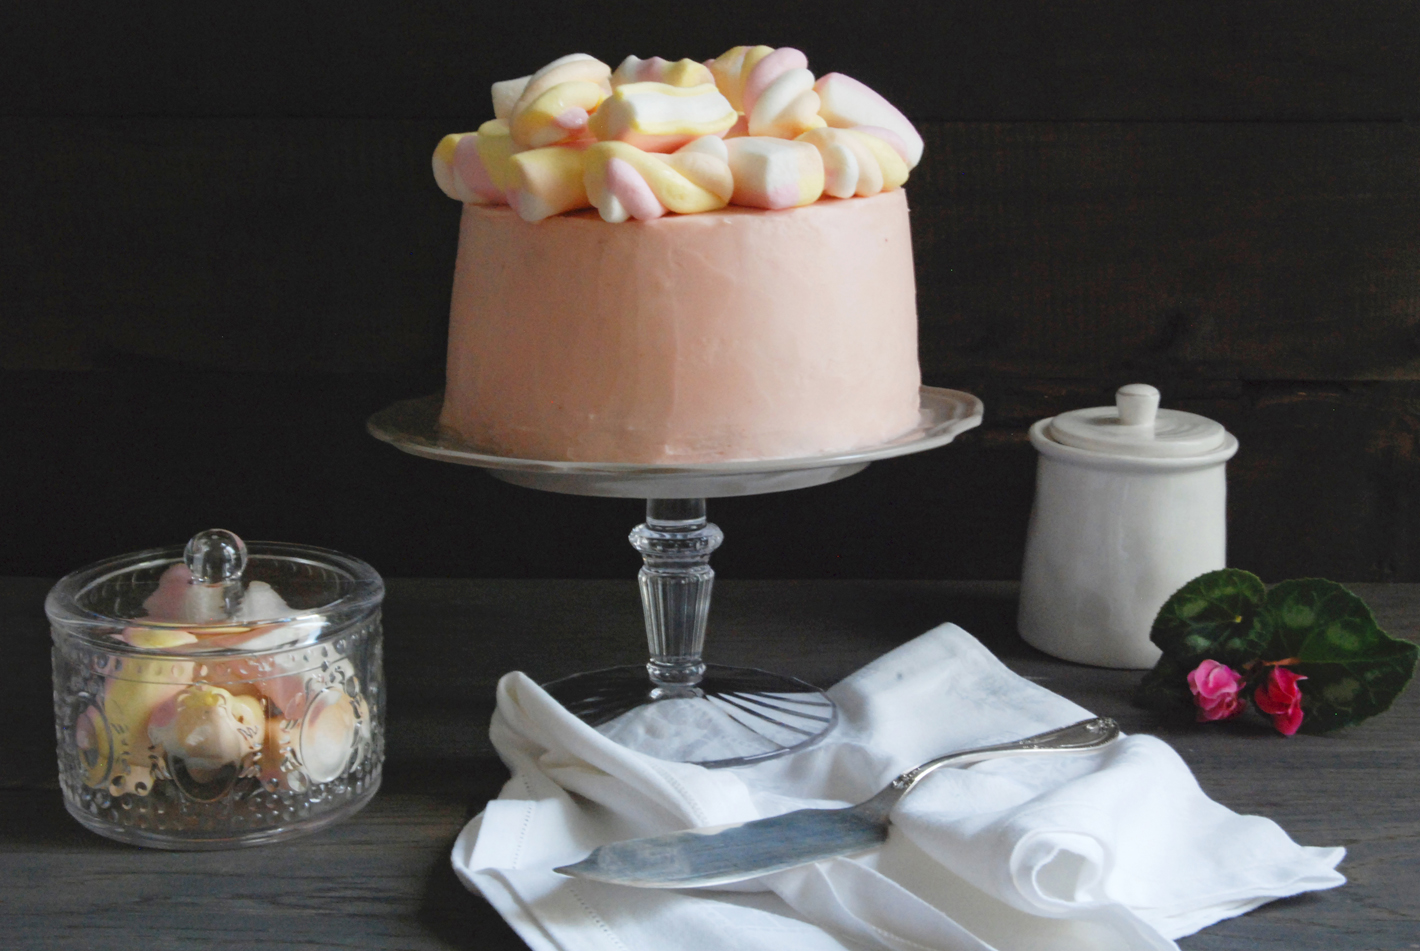 Angel Food Cake Con Frosting Al Lampone E Marshmallow